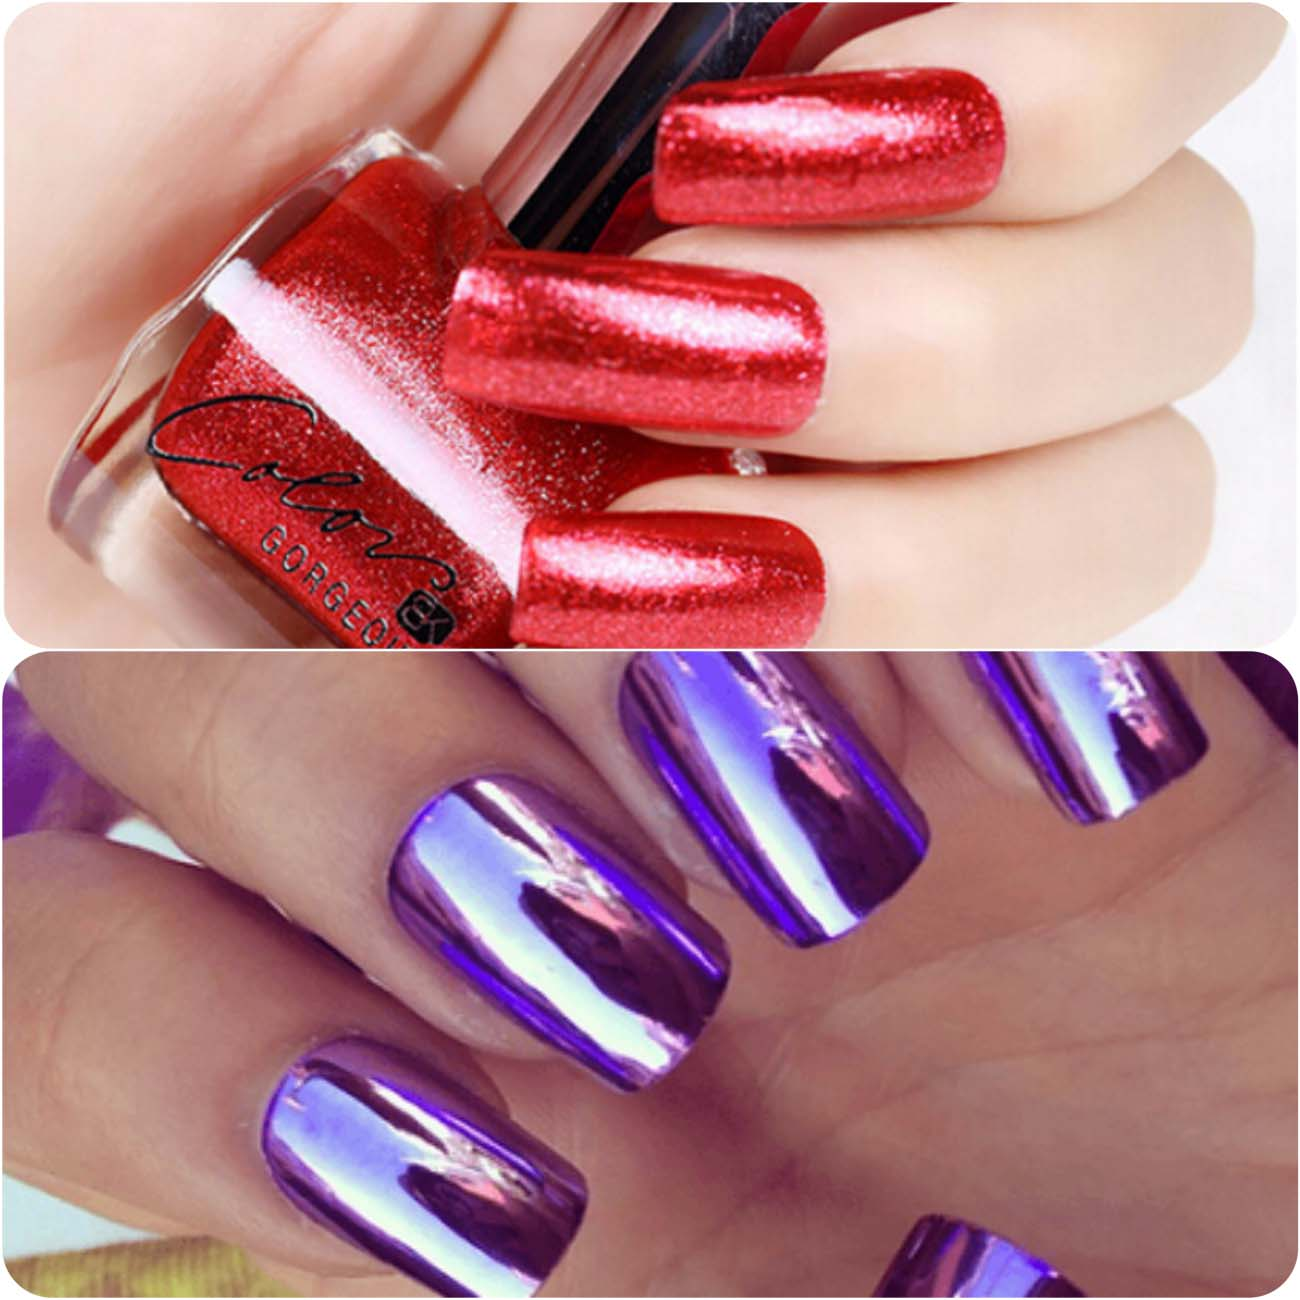 dazzling nail art with mirror effects